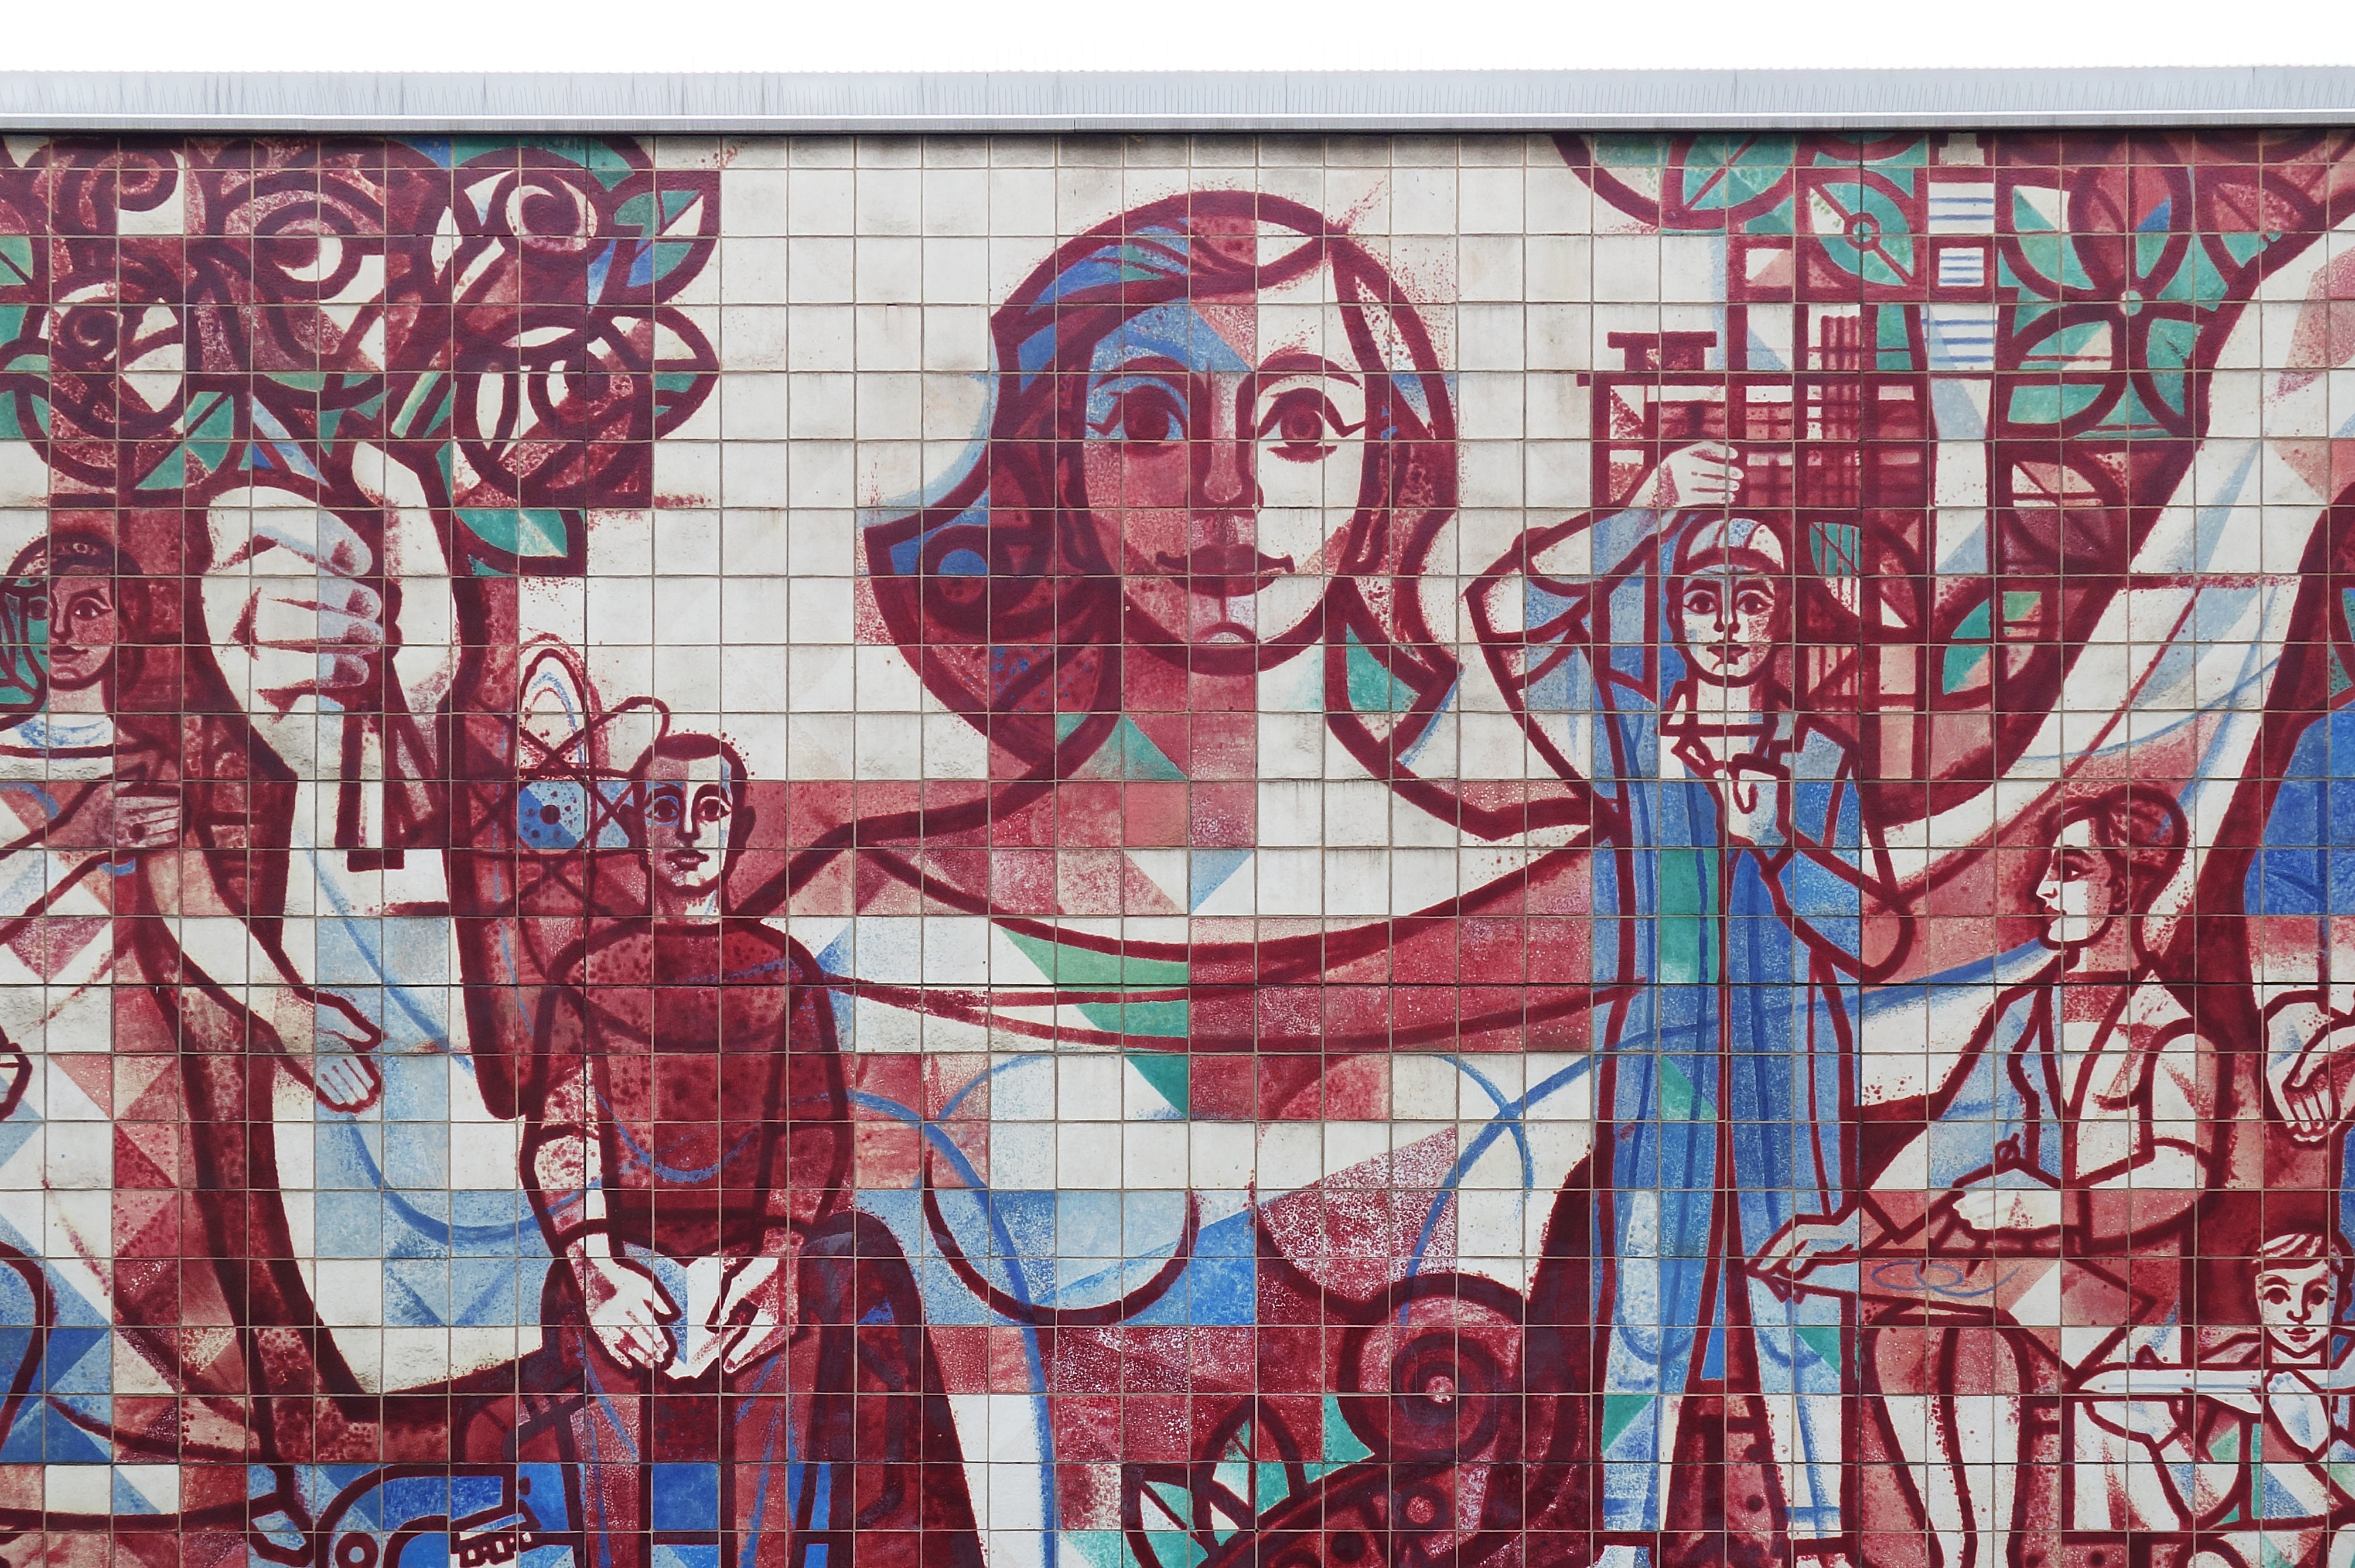 Red graffiti artwork mural of people on mosaic wall in Seevorstadt West, Dresden, Saxony, Germany